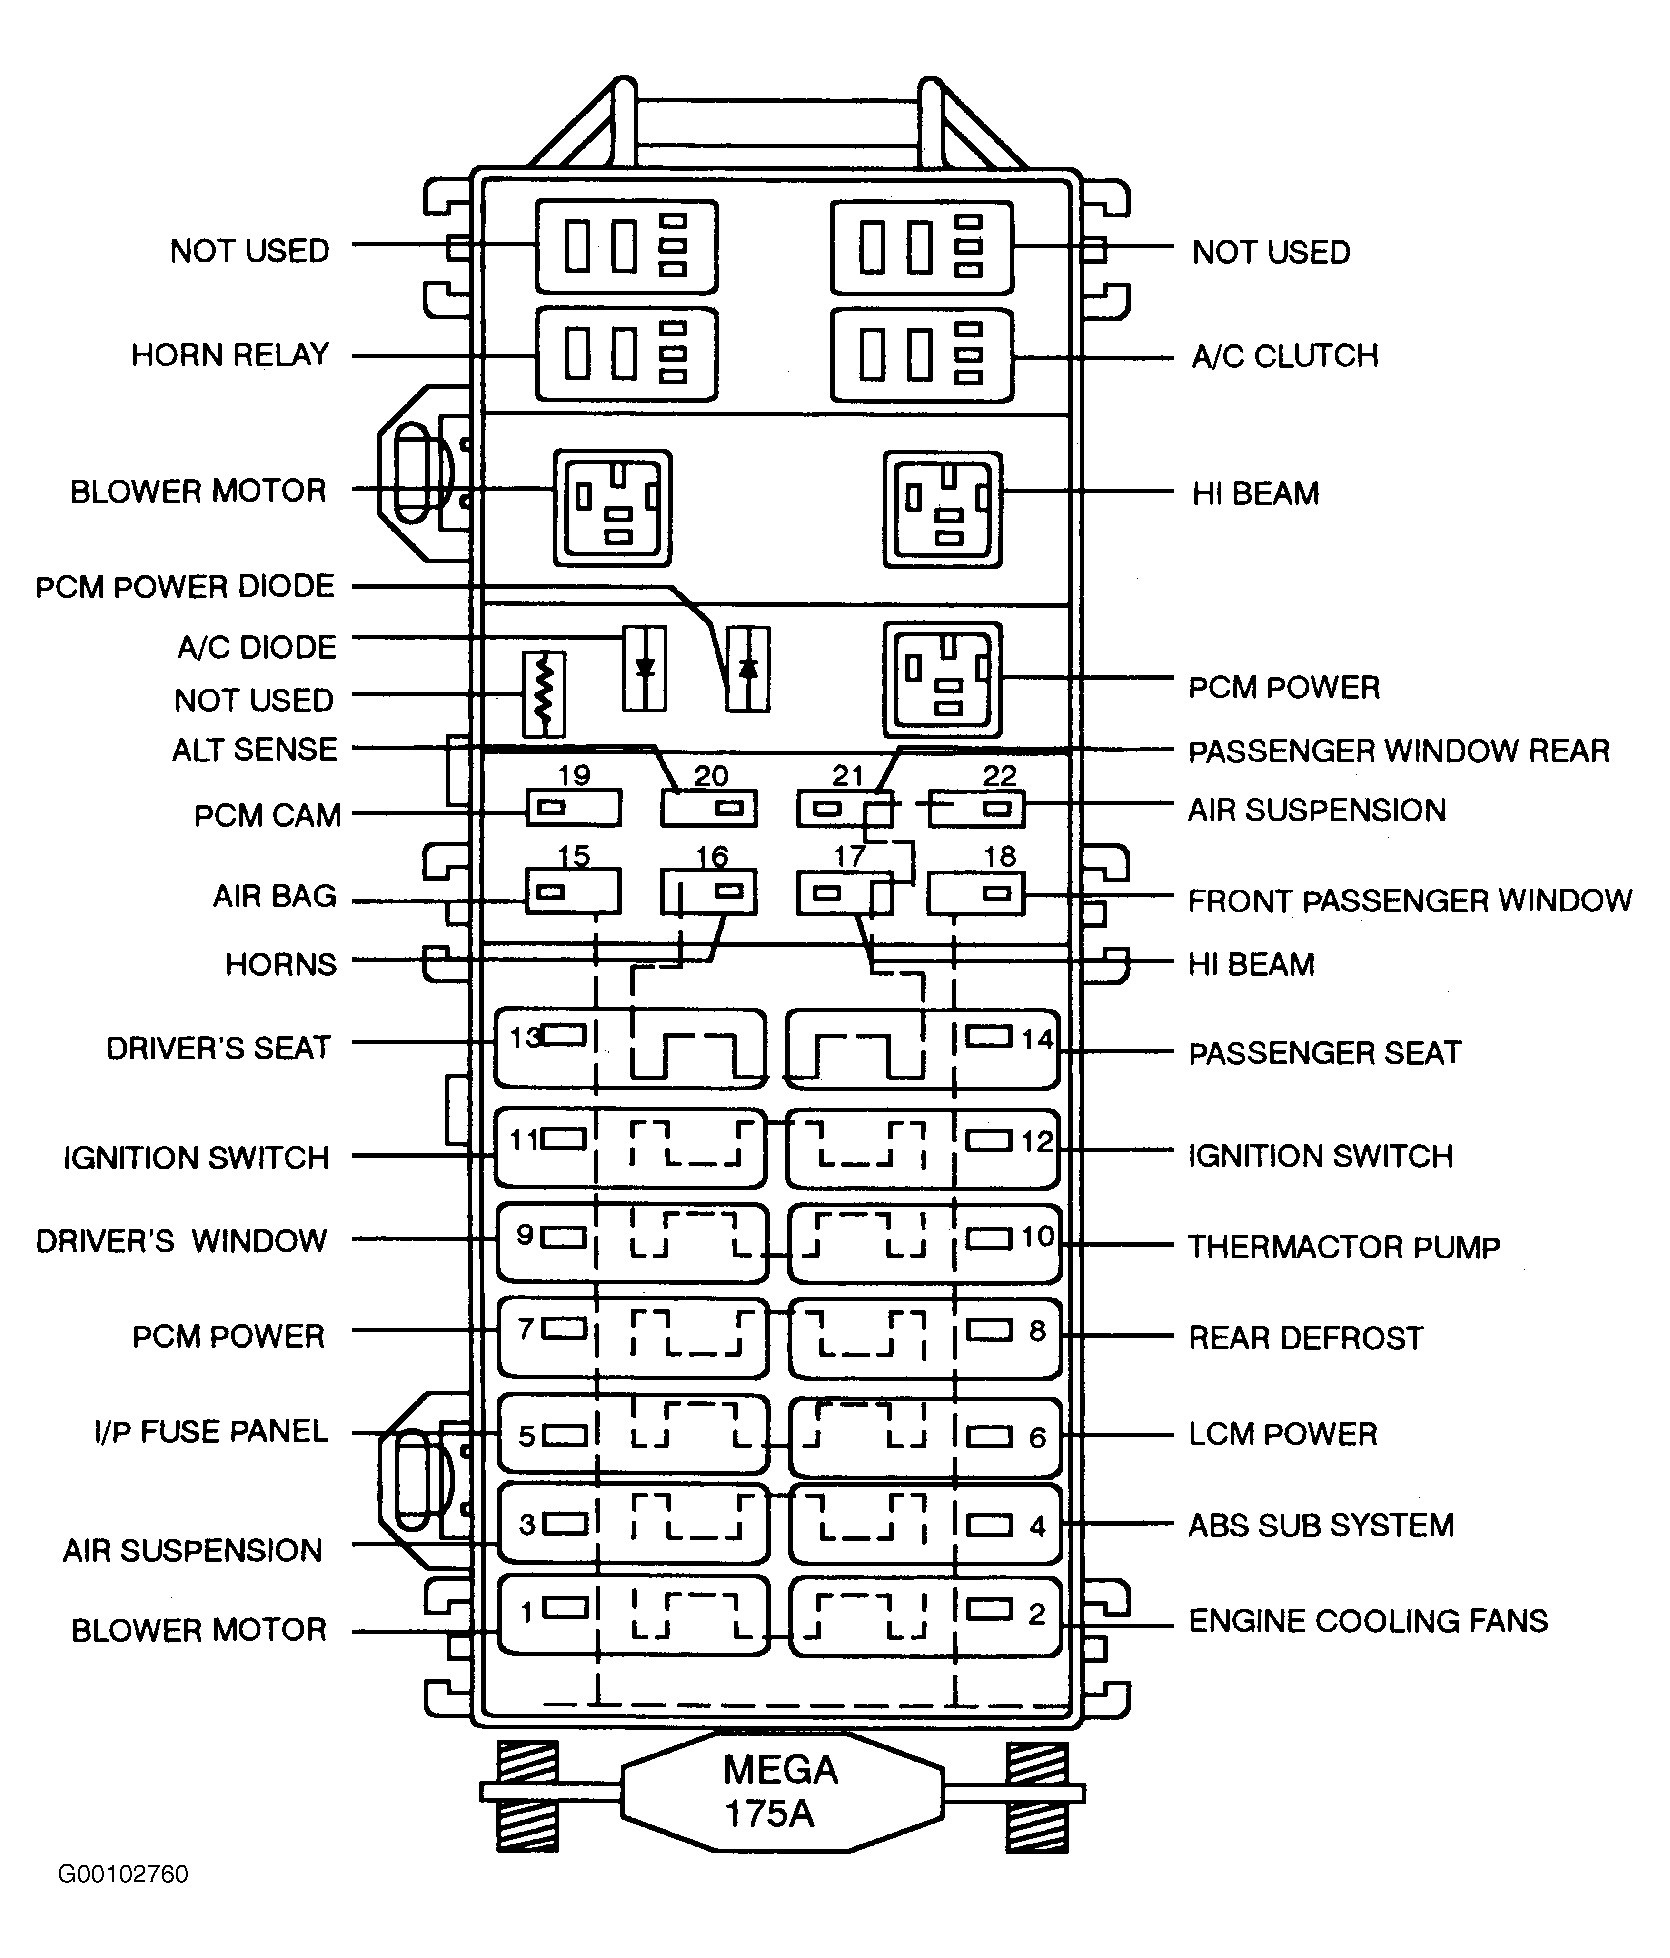 hight resolution of car fuse box layout wiring diagram page02 lincoln town car manual for fuse box schema diagram